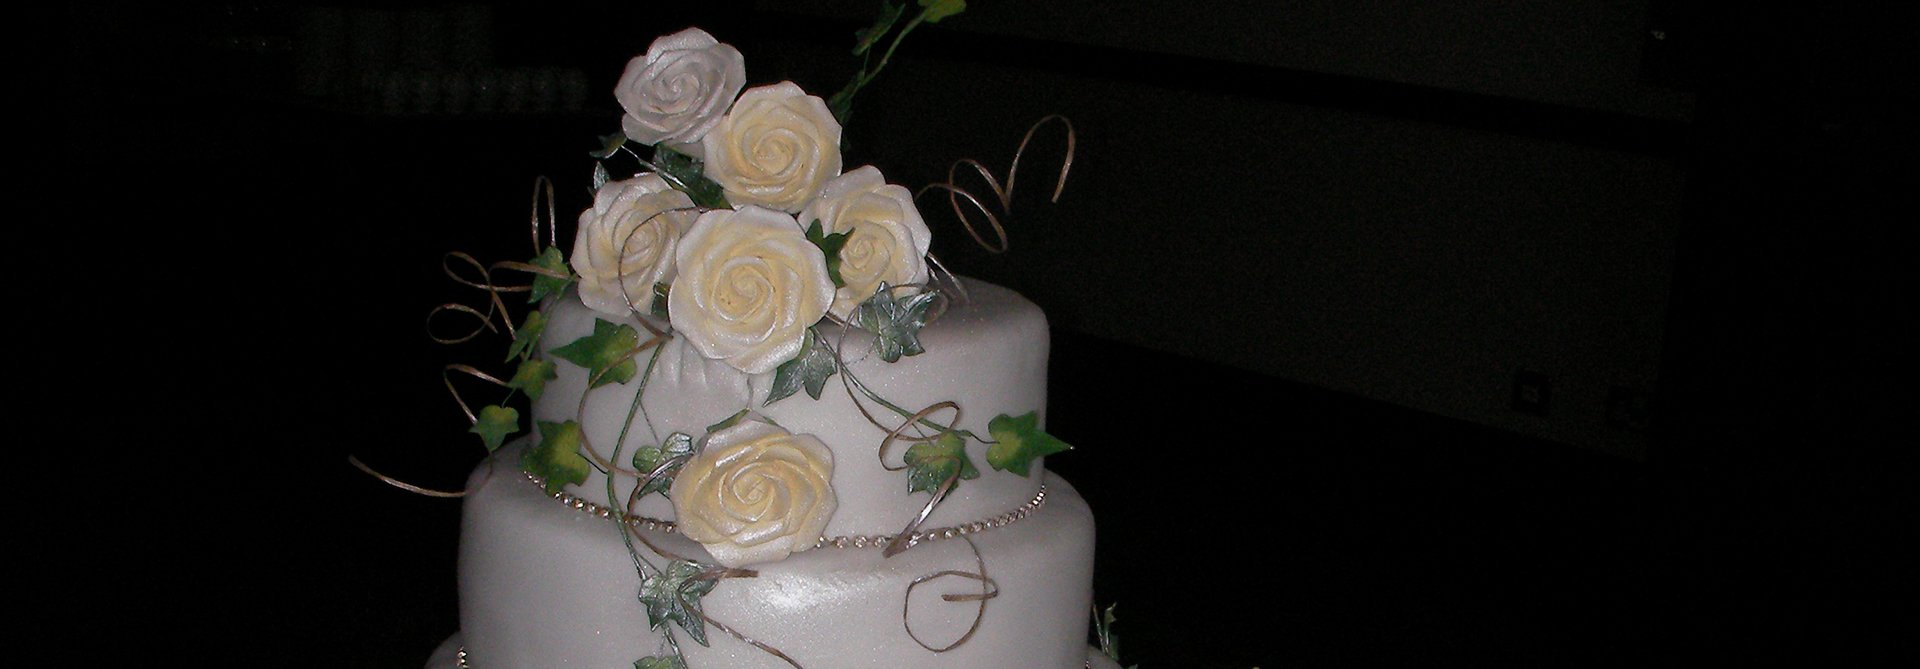 3-tiered wedding cake